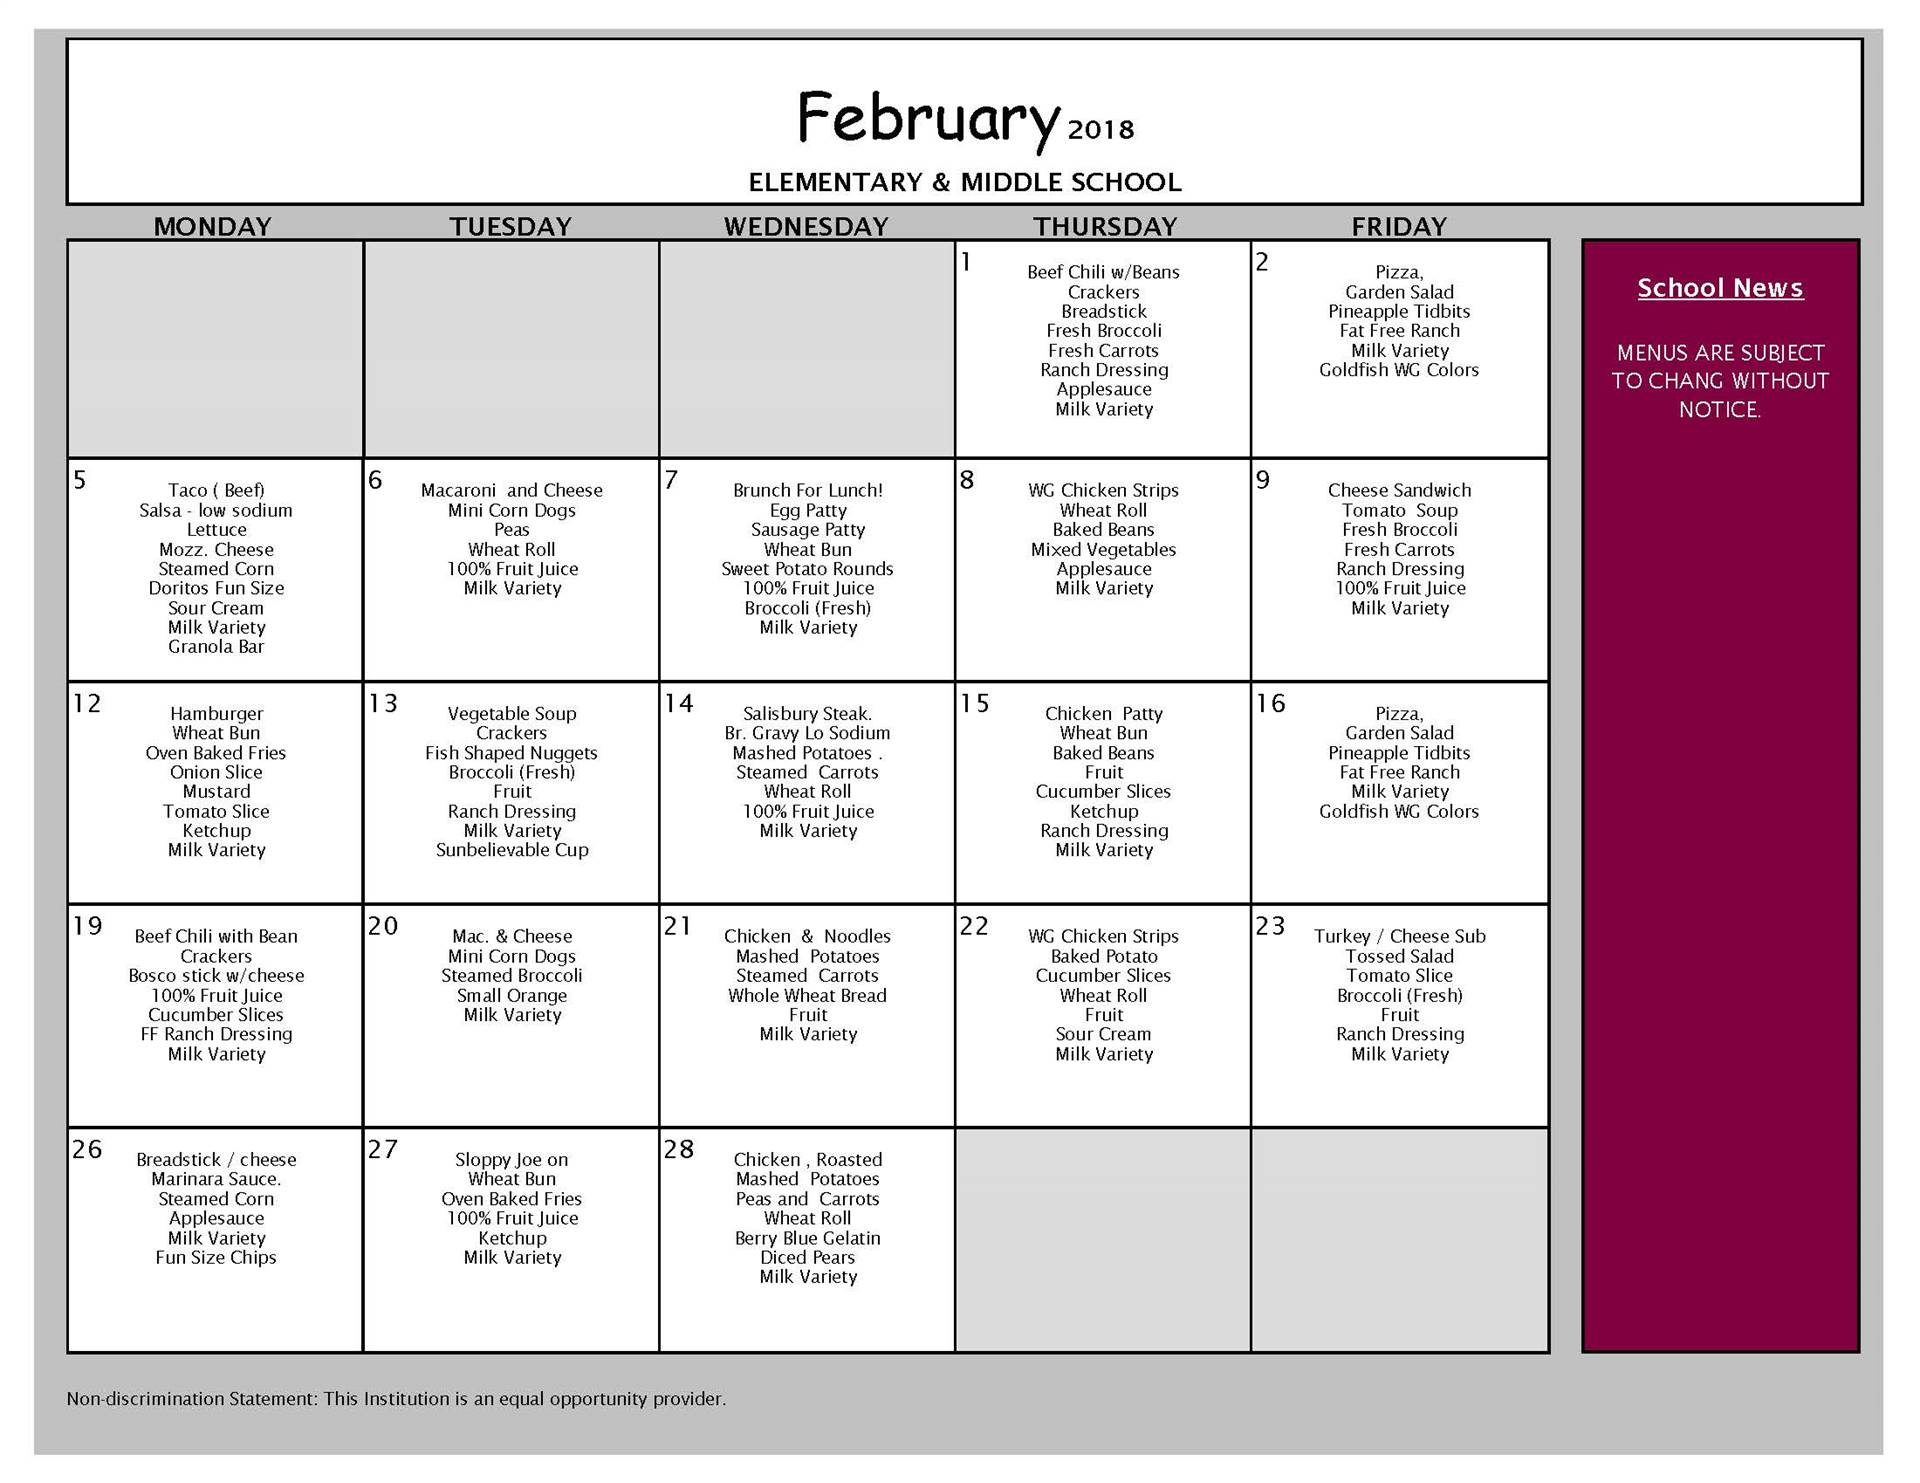 February Lunch Menu - Middle School and Elementary